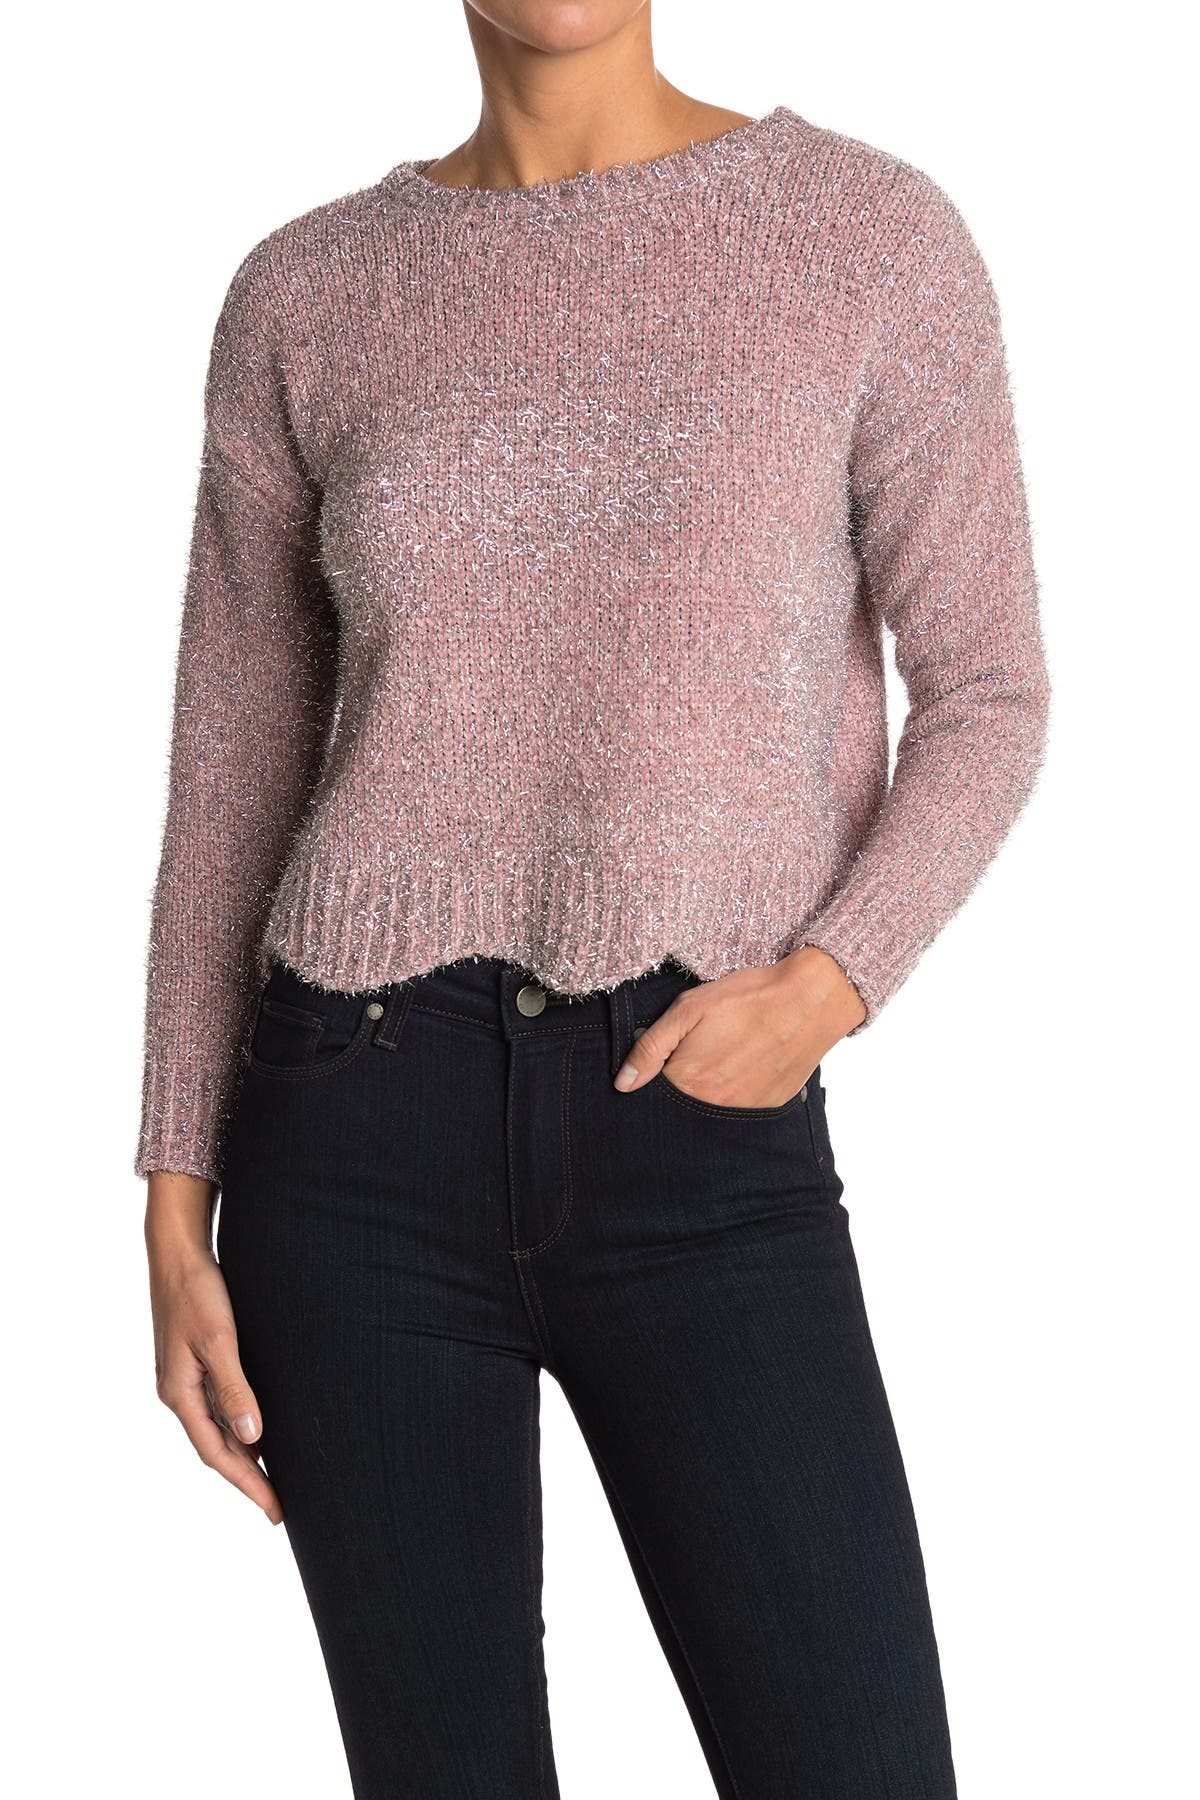 Image of Love by Design Scallop Lurex Sweater